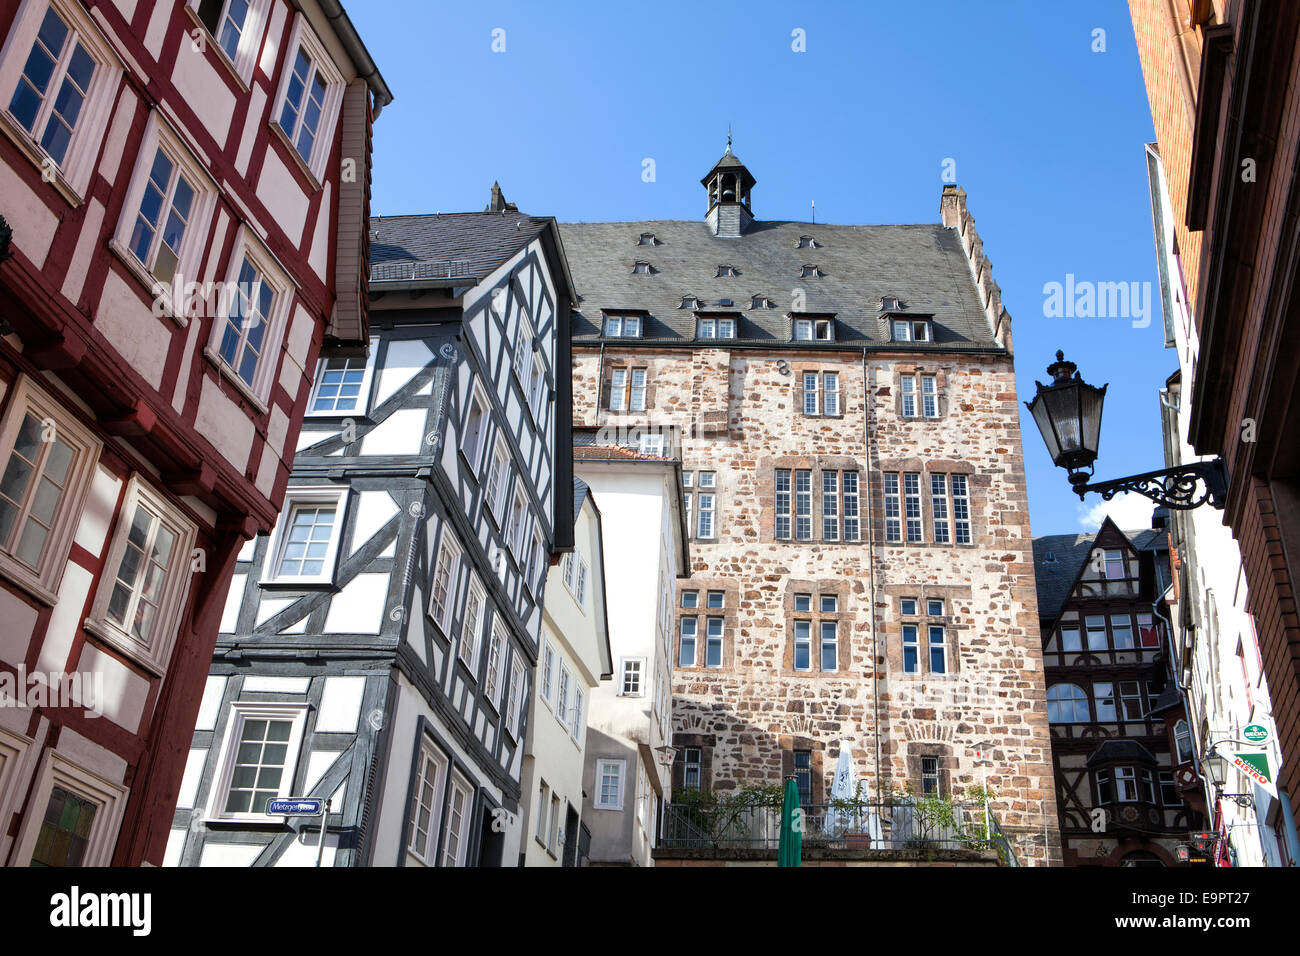 Steile Strasse street, Reitgasse, historic half-timbered houses, historic centre, Marburg, Hesse, Germany, Europe Stock Photo